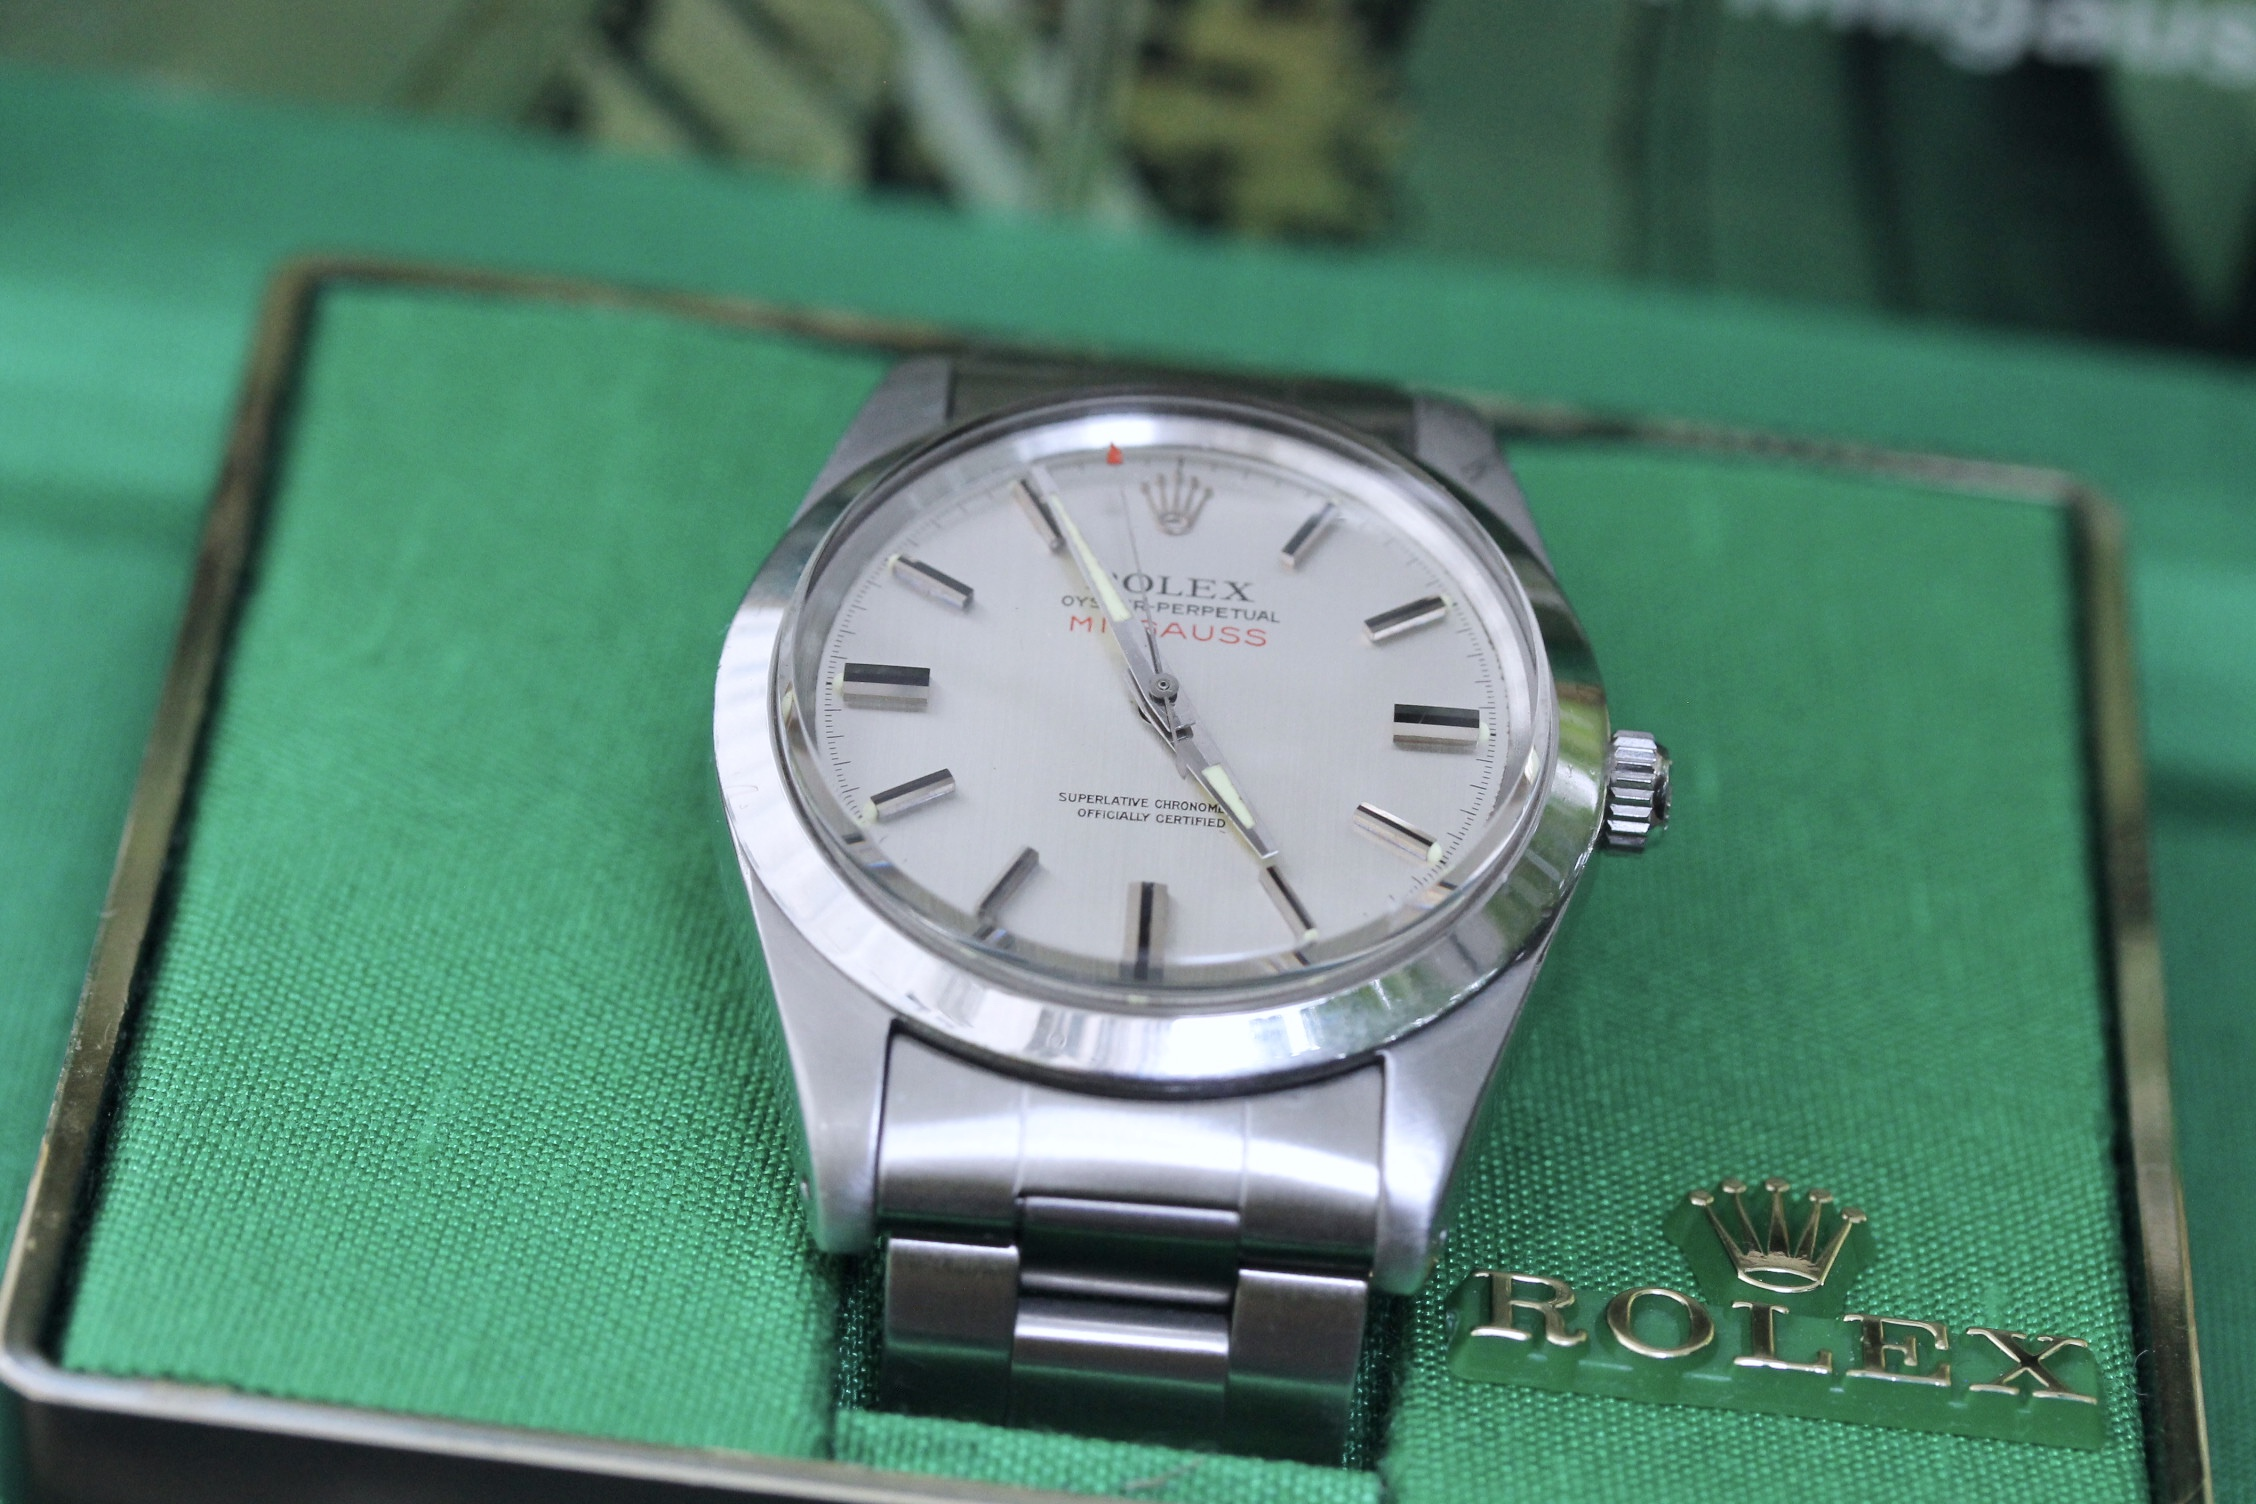 Tom's Milgauss Ref. 1019 - I'll be honest, on first glance, I thought Tom was wearing a Datejust...It wasn't until my eye caught his watch in just the right light - at just the right angle - that the 38mm case, with its extra-wide, smooth bezel, glinted back at me.And then the red, upper case, sans serif font came into focus. I couldn't let this opportunity pass me by. I had to talk to Tom about his watch…